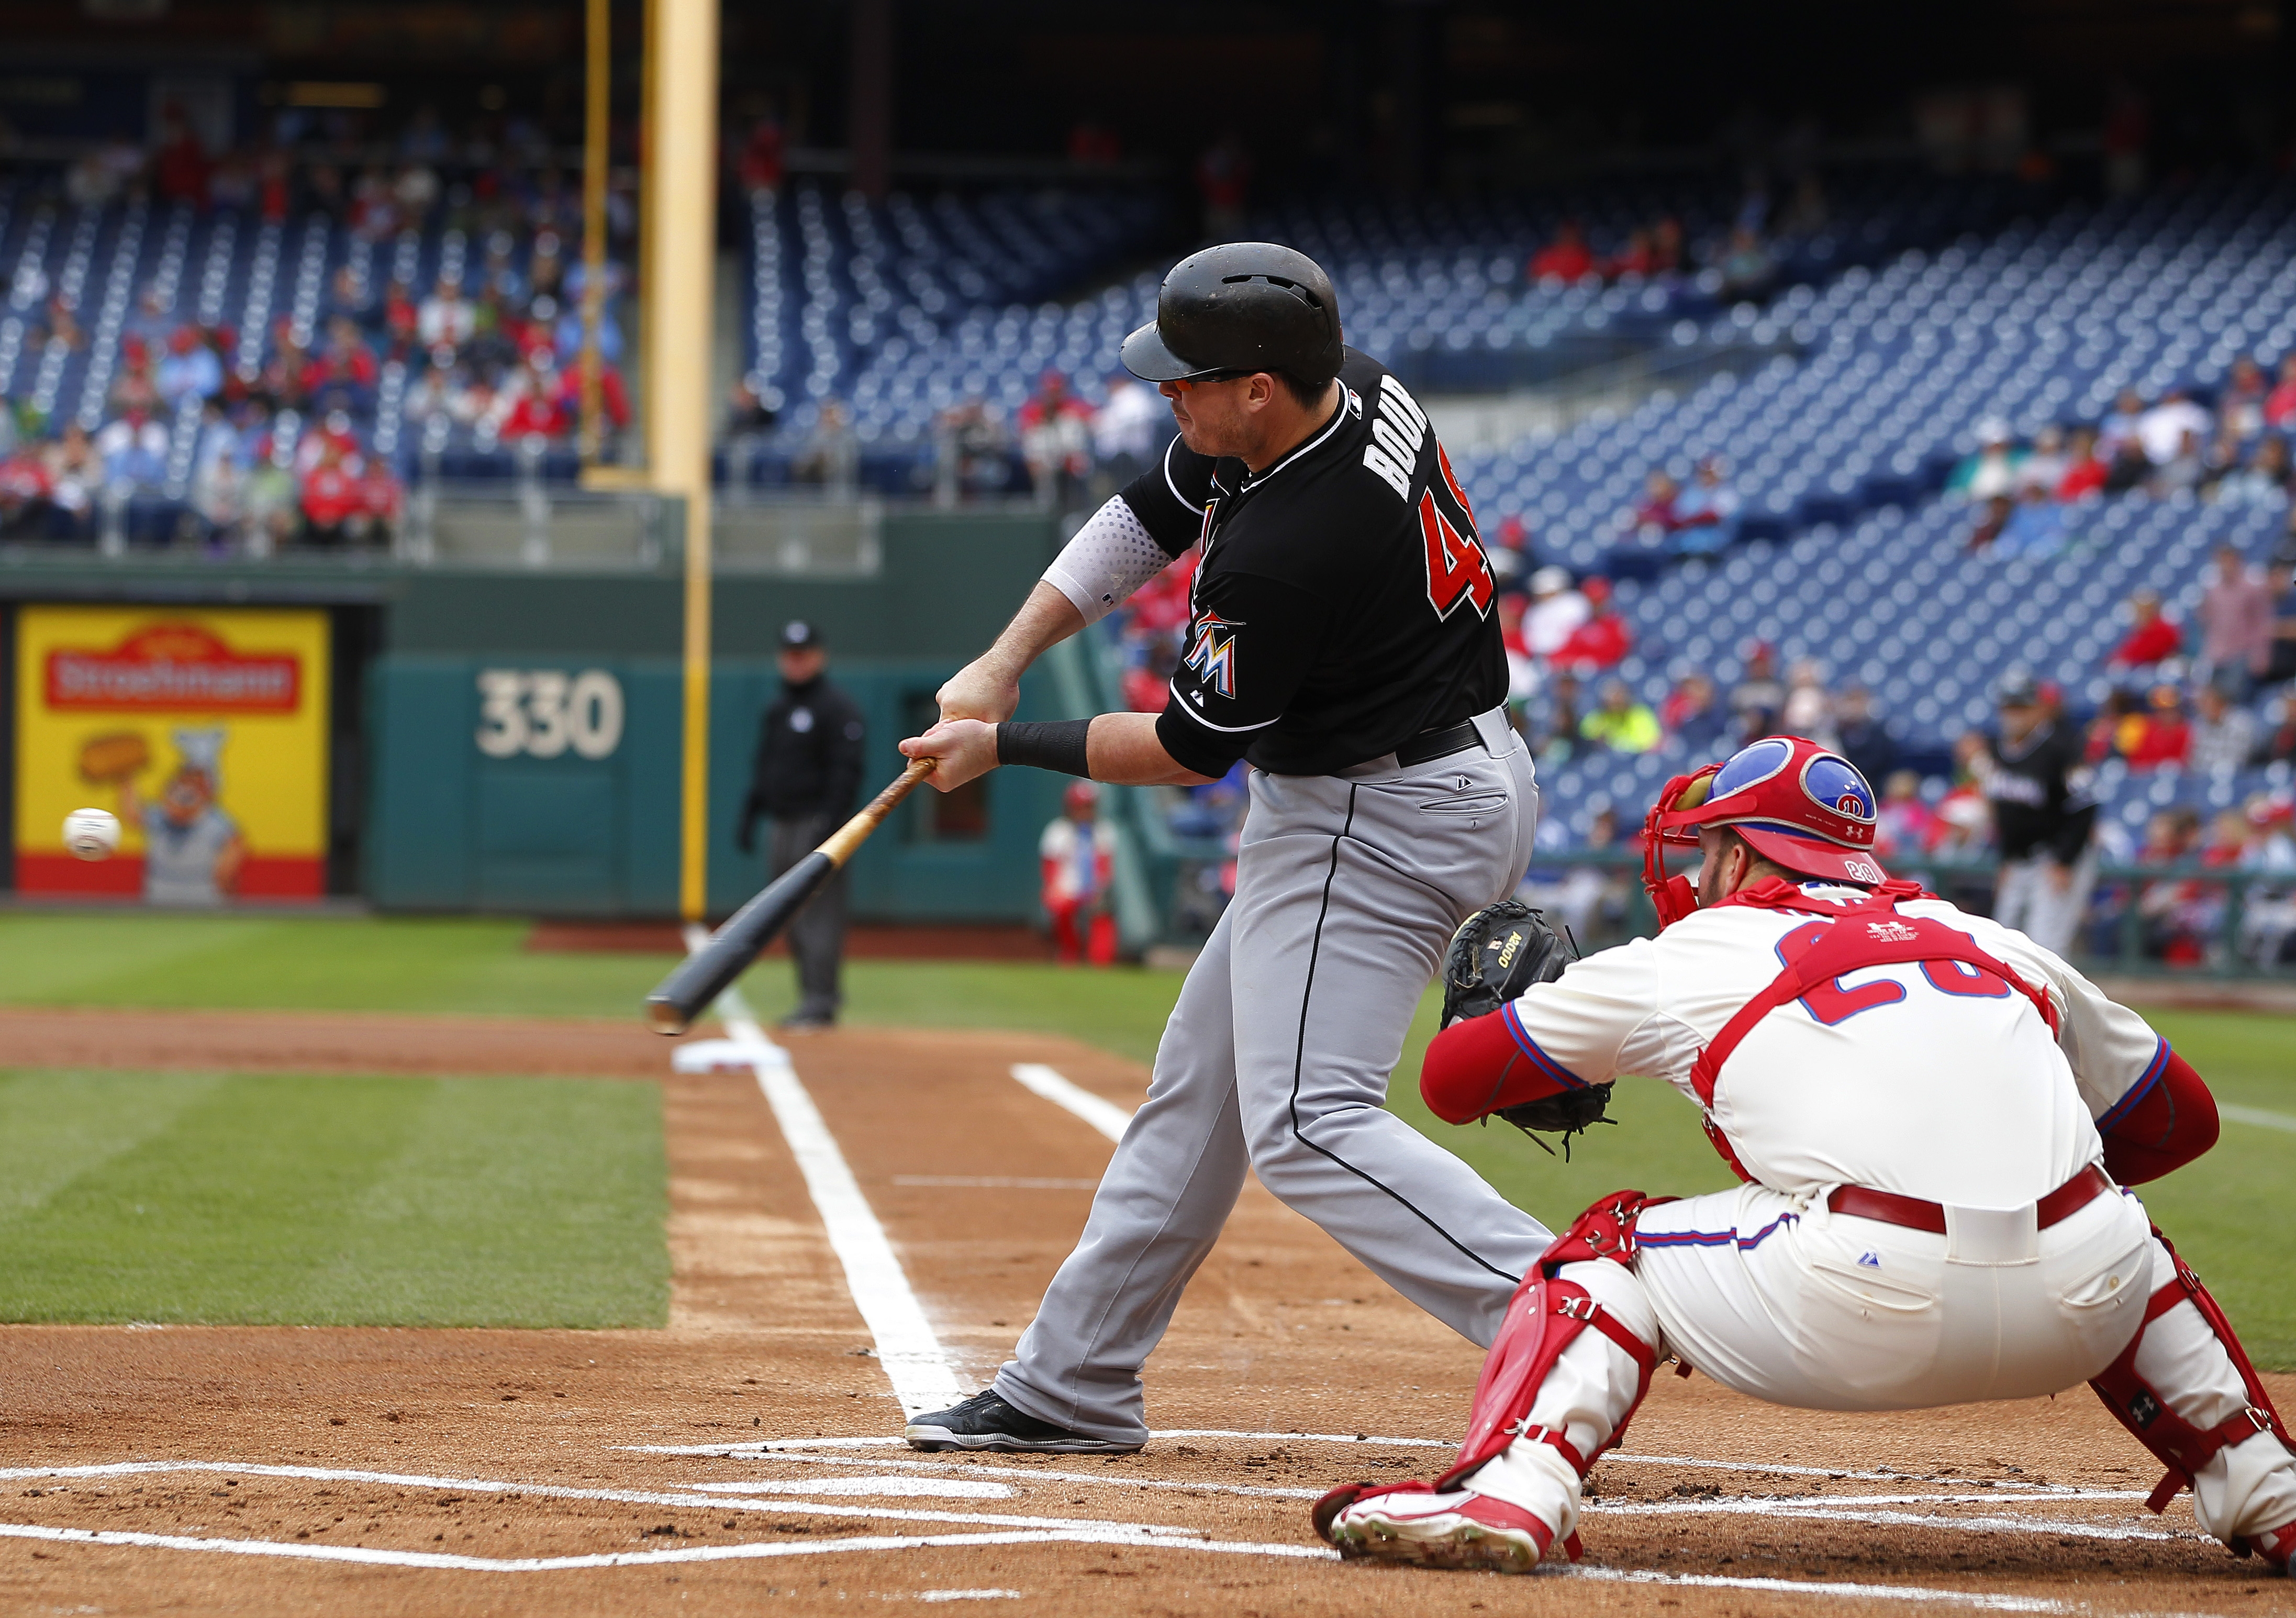 Miami Marlins'Justin Bour, left, hits an RBI-single against the Philadelphia Phillies during the first inning of a baseball game Sunday, Oct. 4, 2015, in Philadelphia. (AP Photo/Rich Schultz)